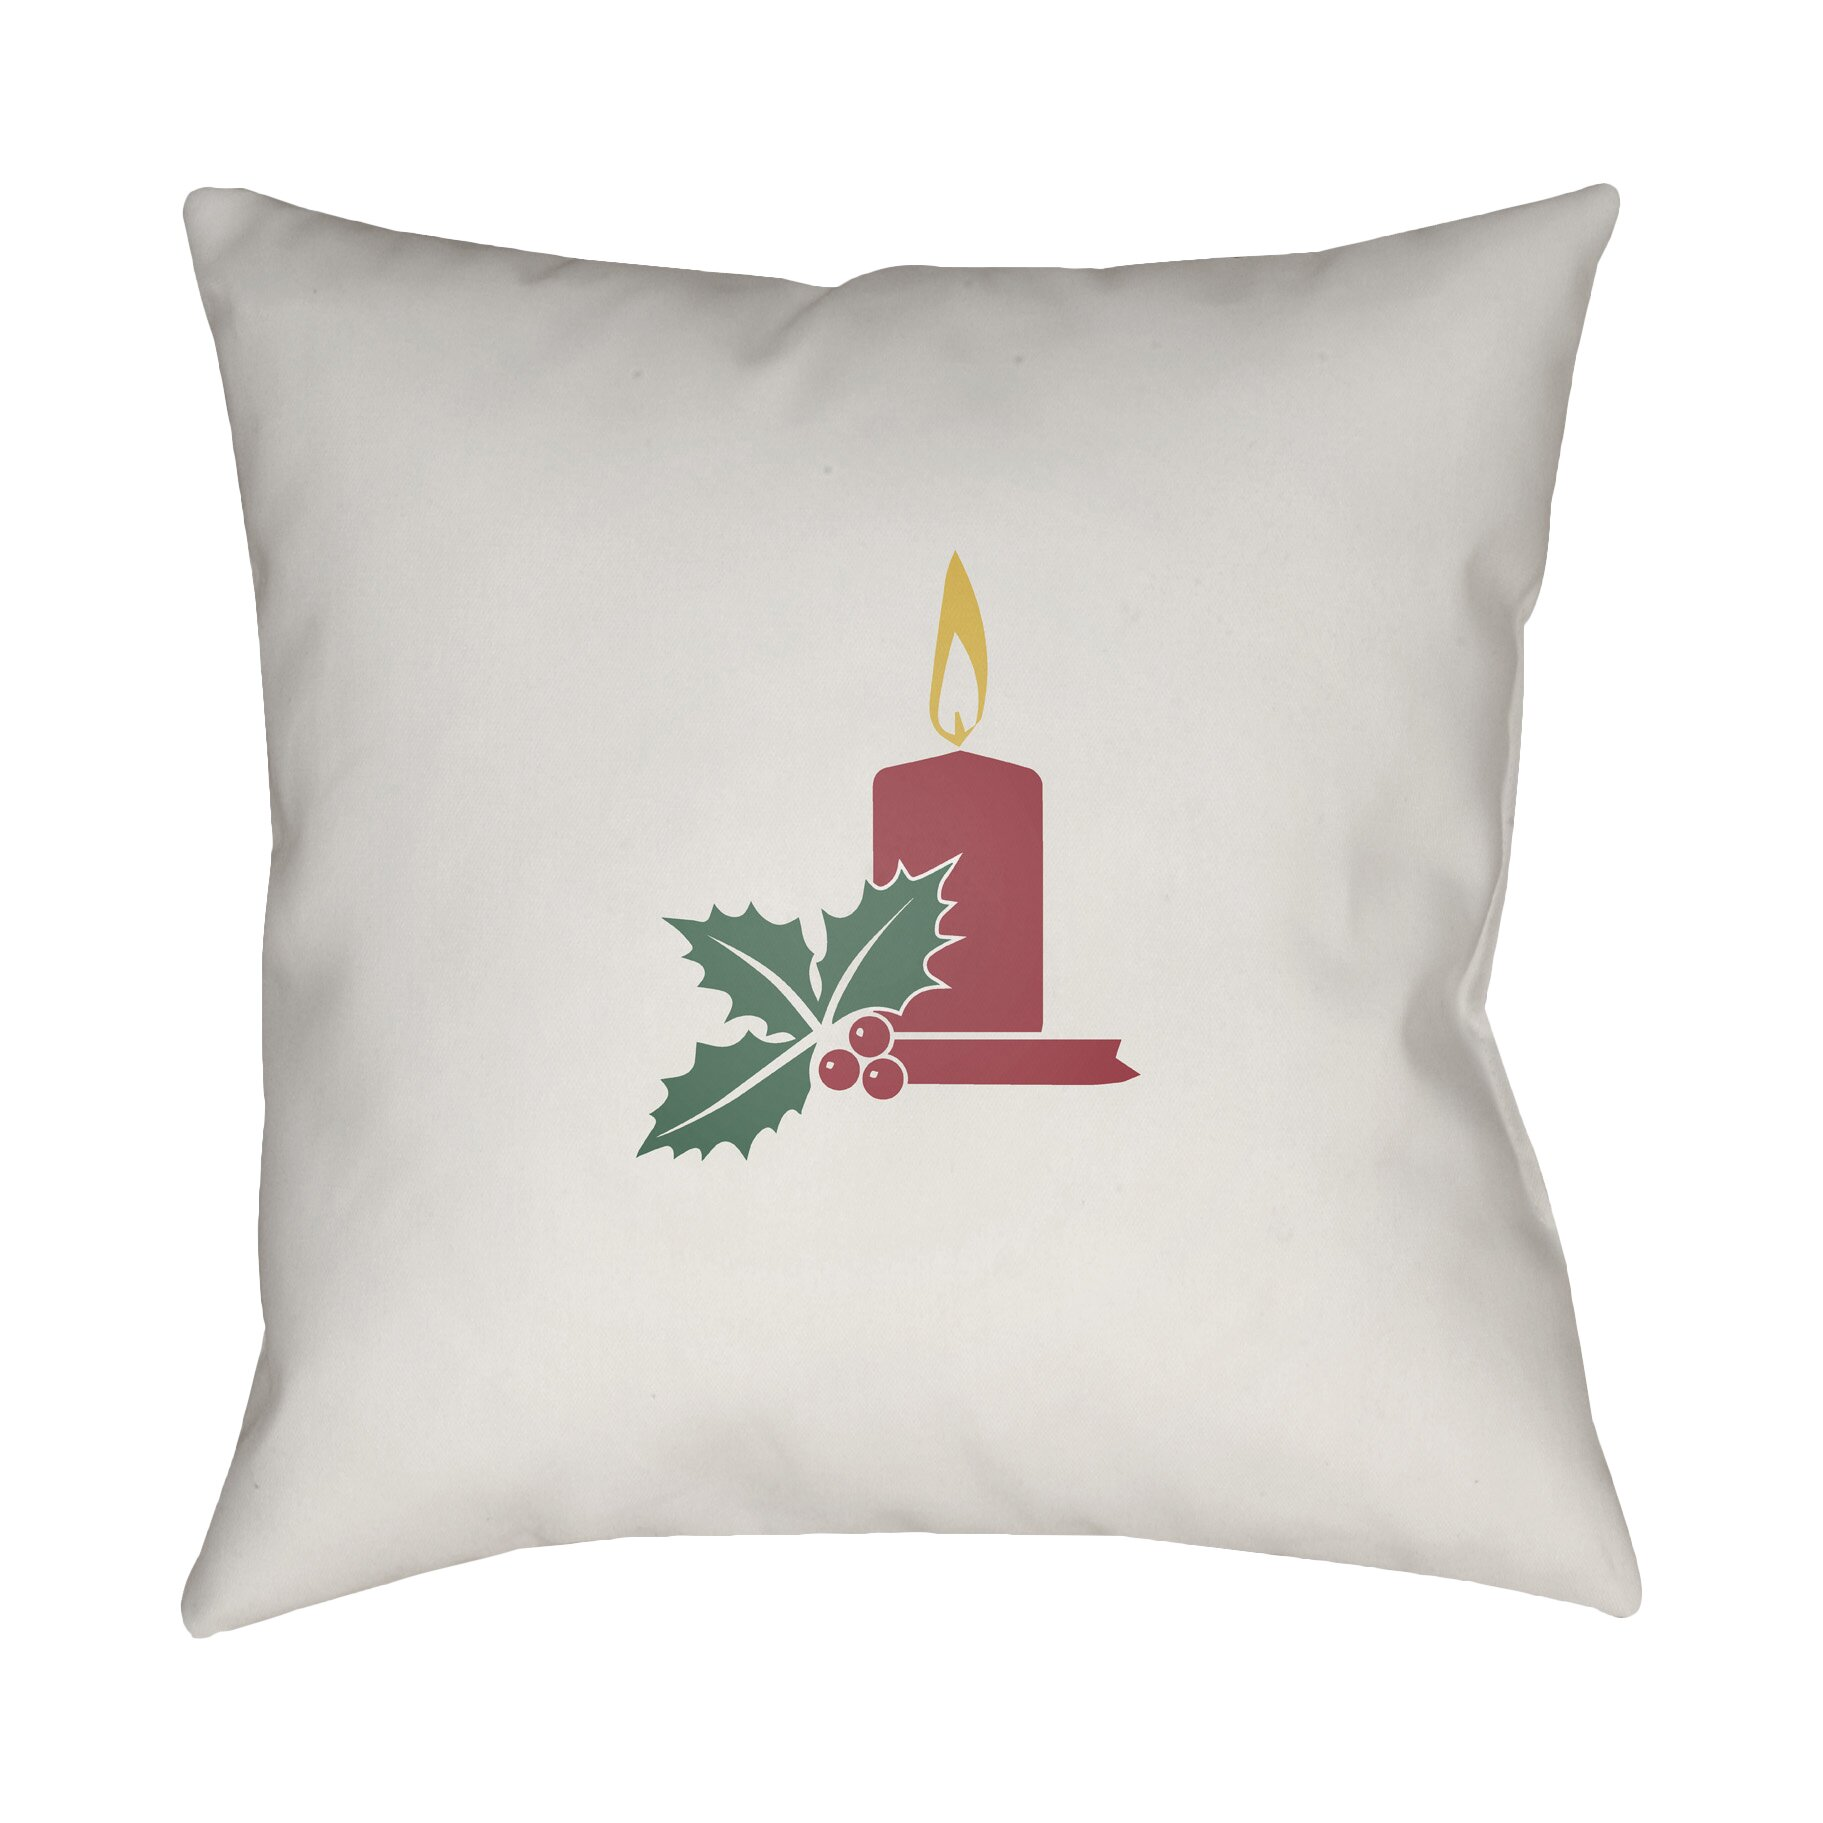 Throw Pillows In Abuja : Alcott Hill Westlake Indoor/Outdoor Throw Pillow & Reviews Wayfair